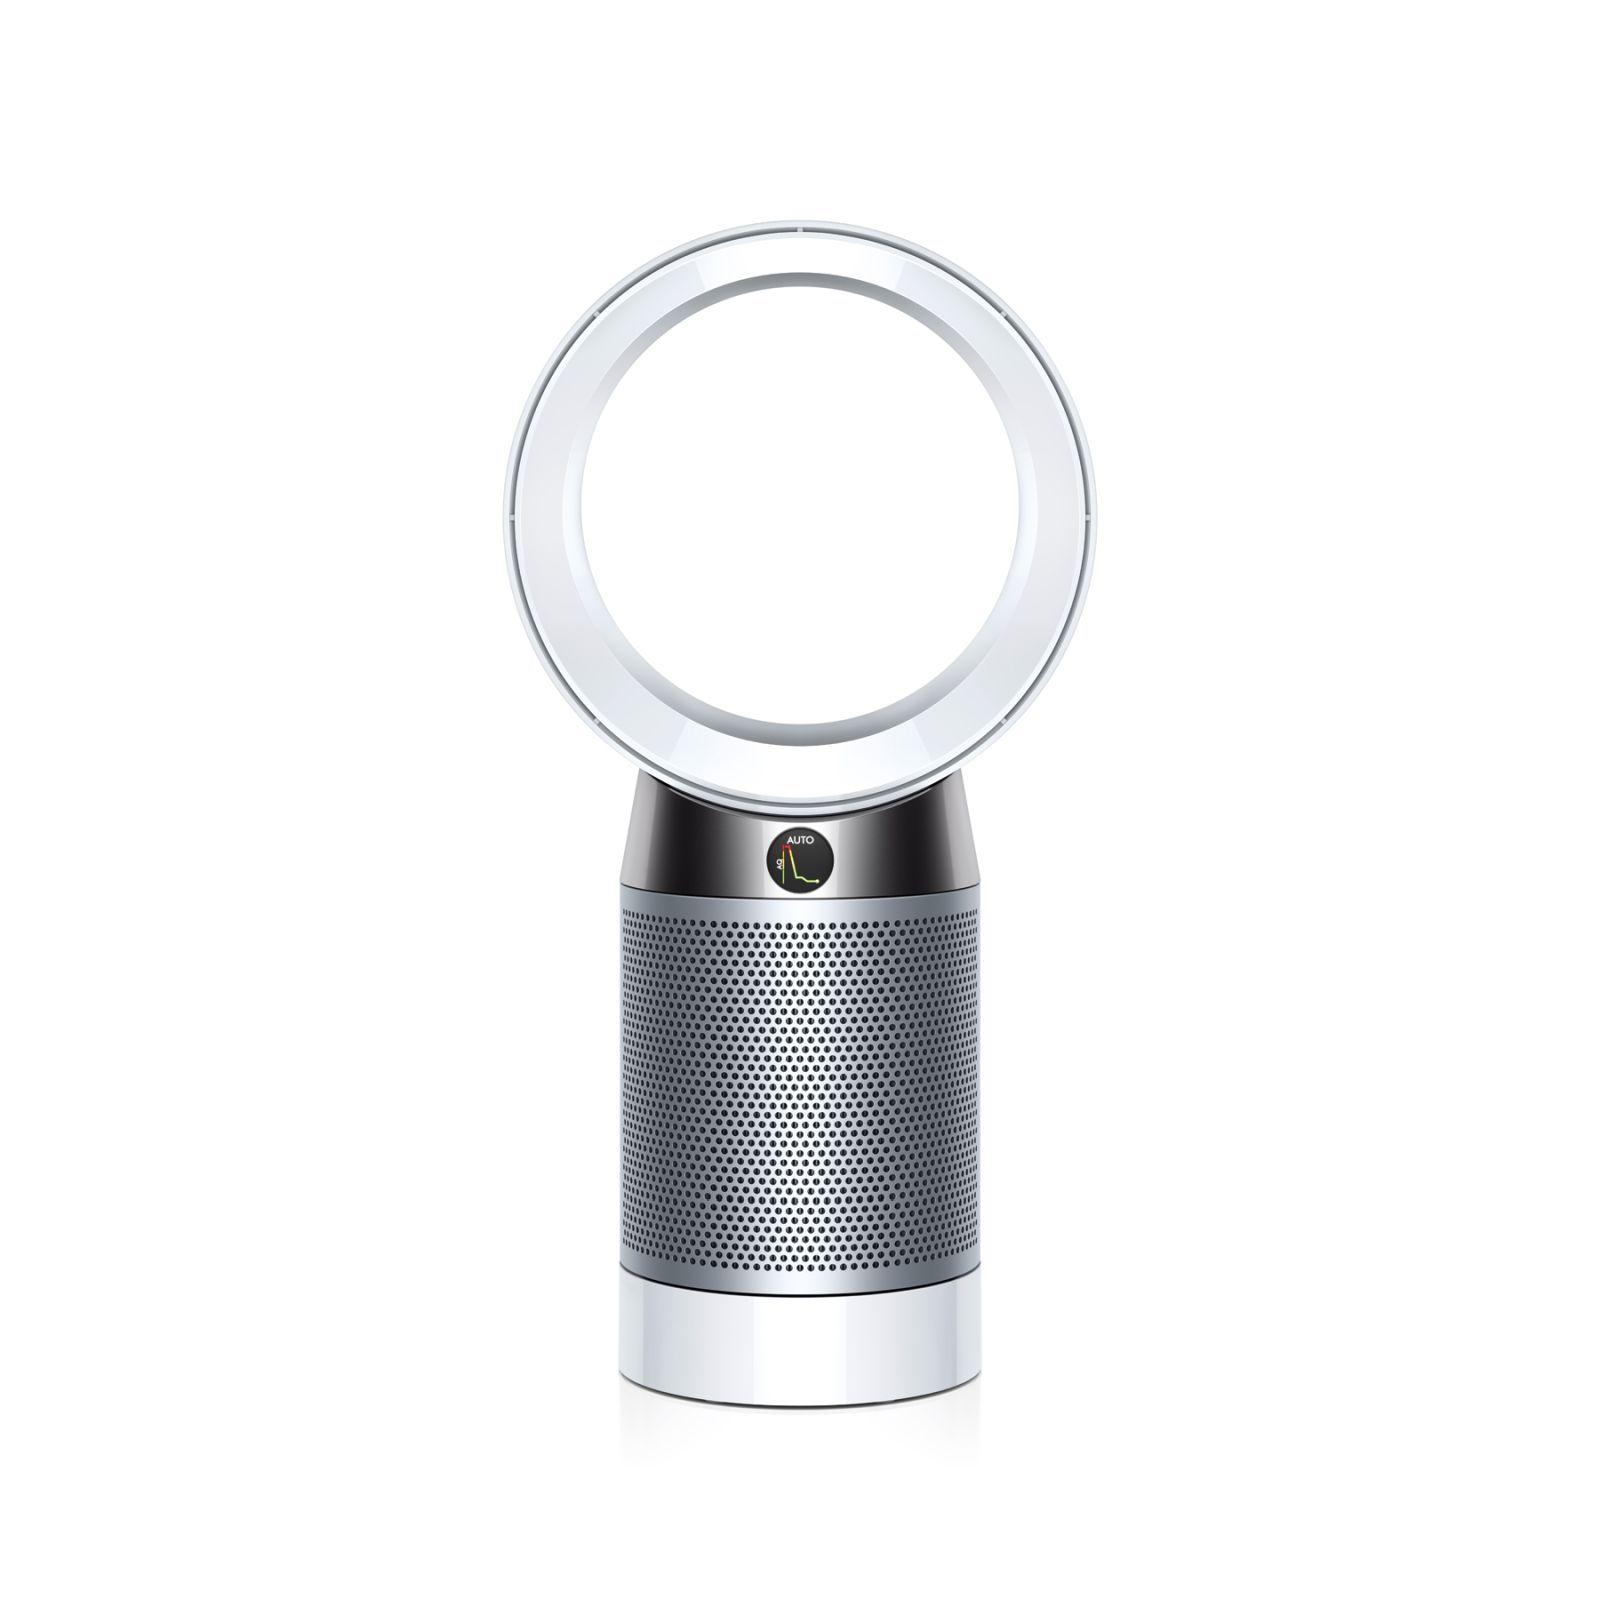 Dyson Fan Filter Replacements Price In Singapore